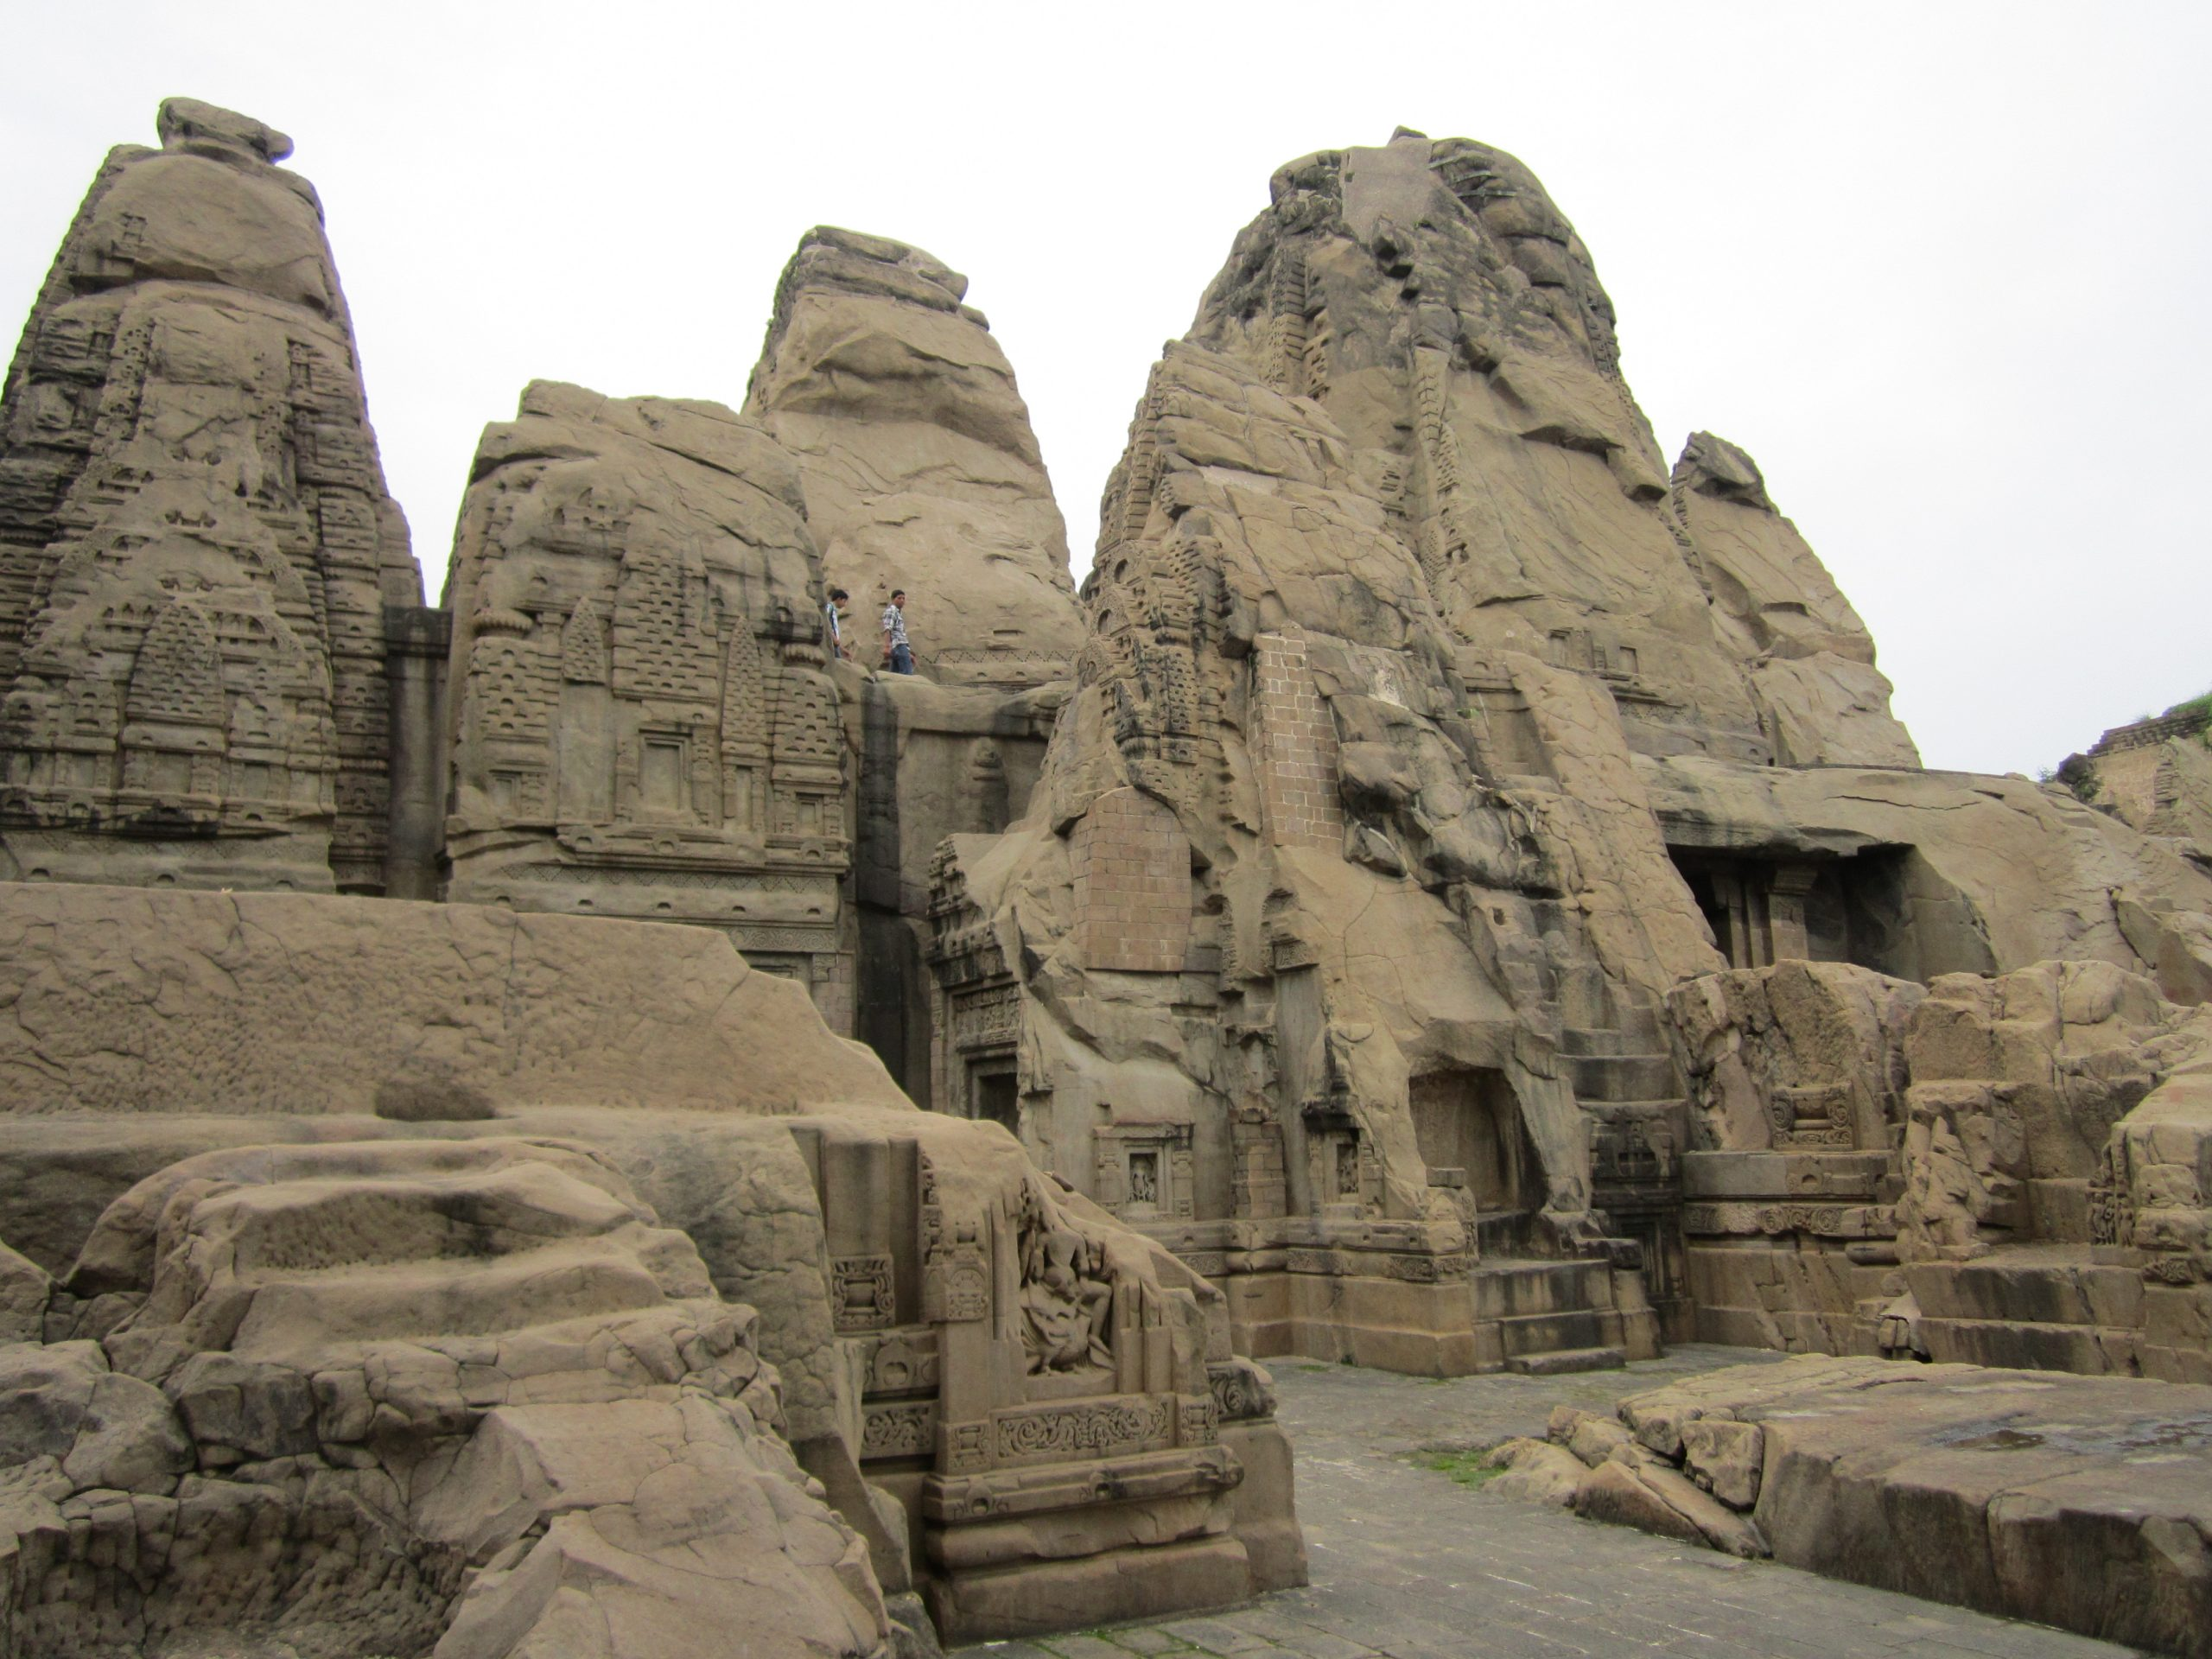 Masrur Rock Cut Temple - Must-Visit Place in Dharamshala and McLeodganj